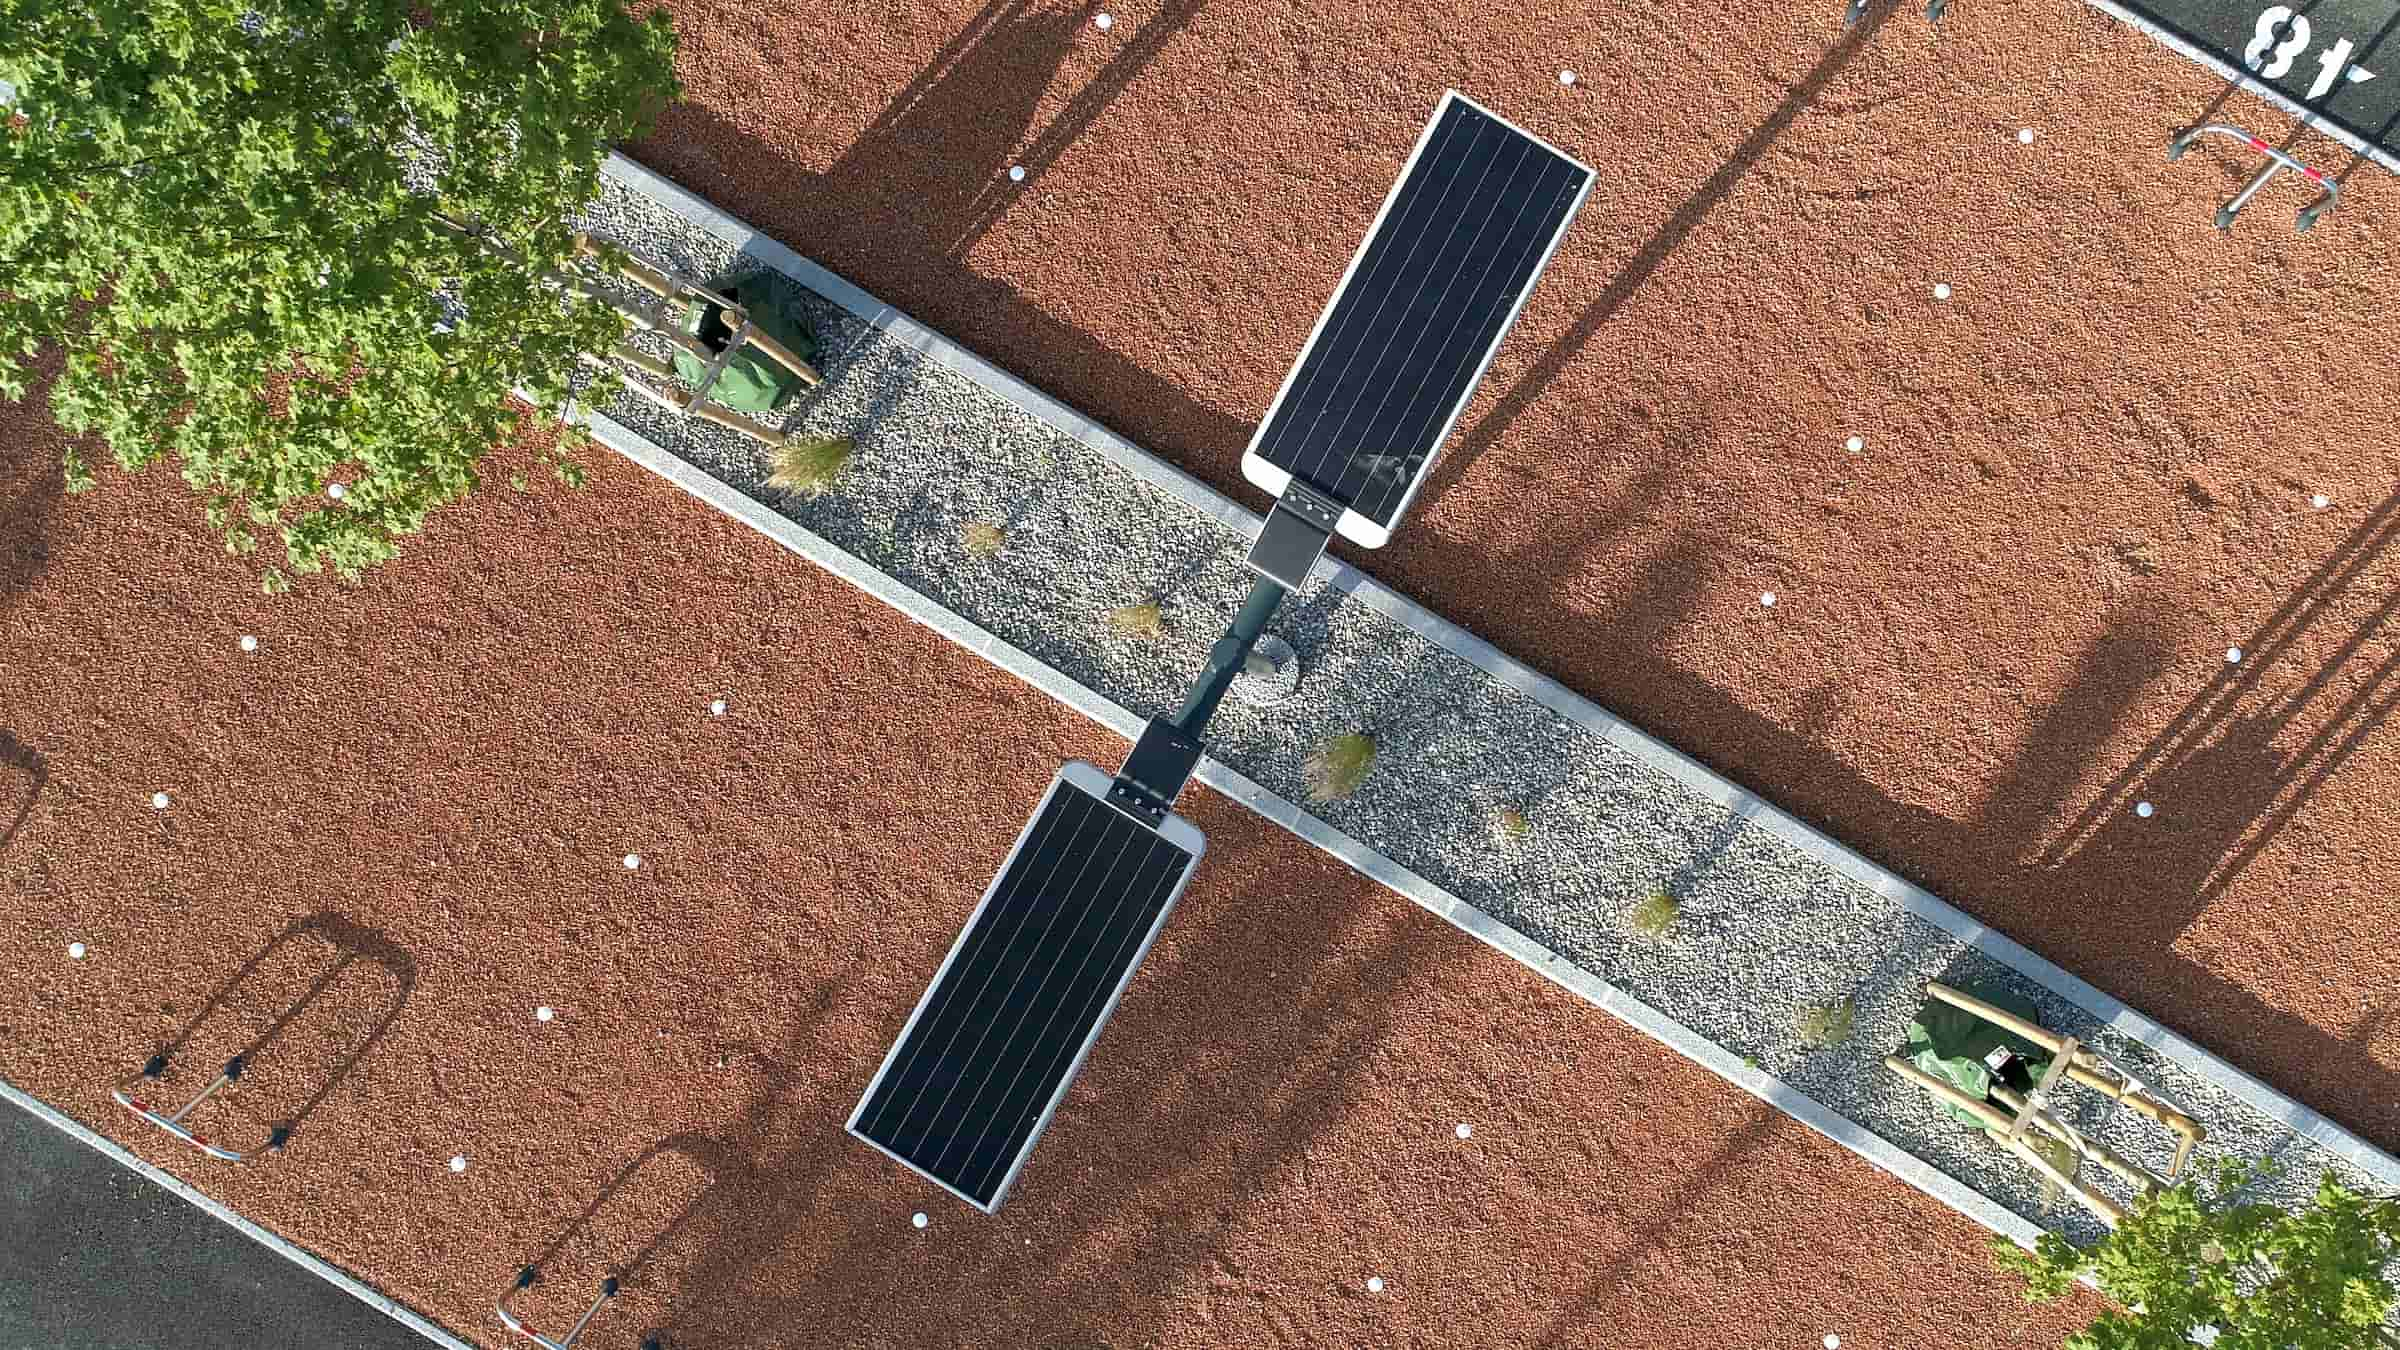 Solar panels integrated with solar street lights are photosensitive electronic components, its charging voltage determines the solar street light's switching on and off operation.